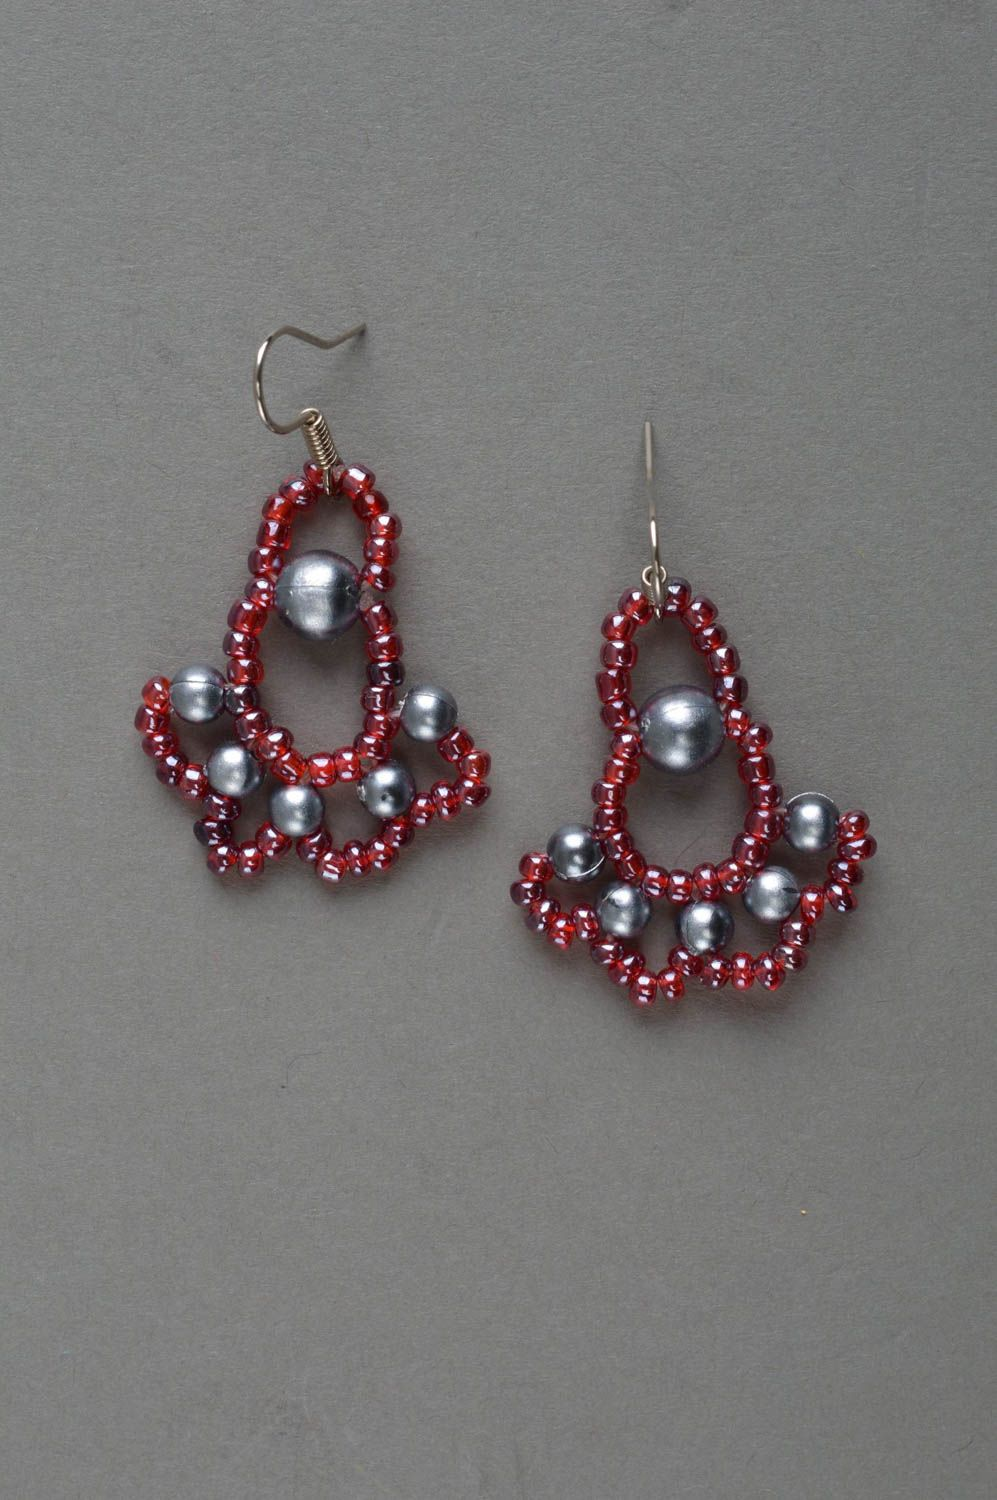 b1bb48e0c128a Large homemade beaded earrings evening jewelry